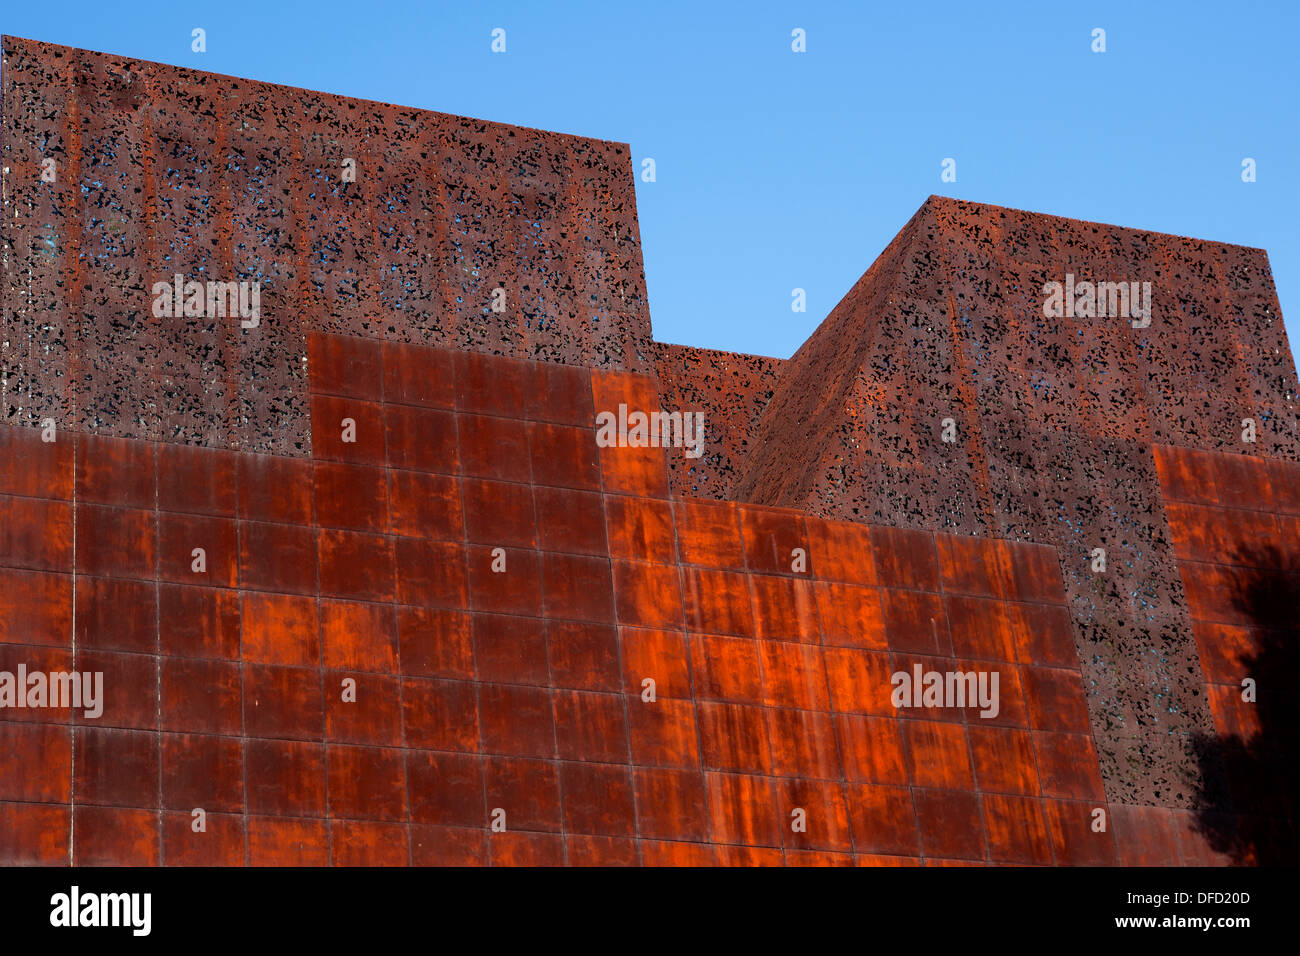 CaixaForum Museum and culture center, constructed by the Swiss architects Herzog & de Meuron Madrid - Stock Image